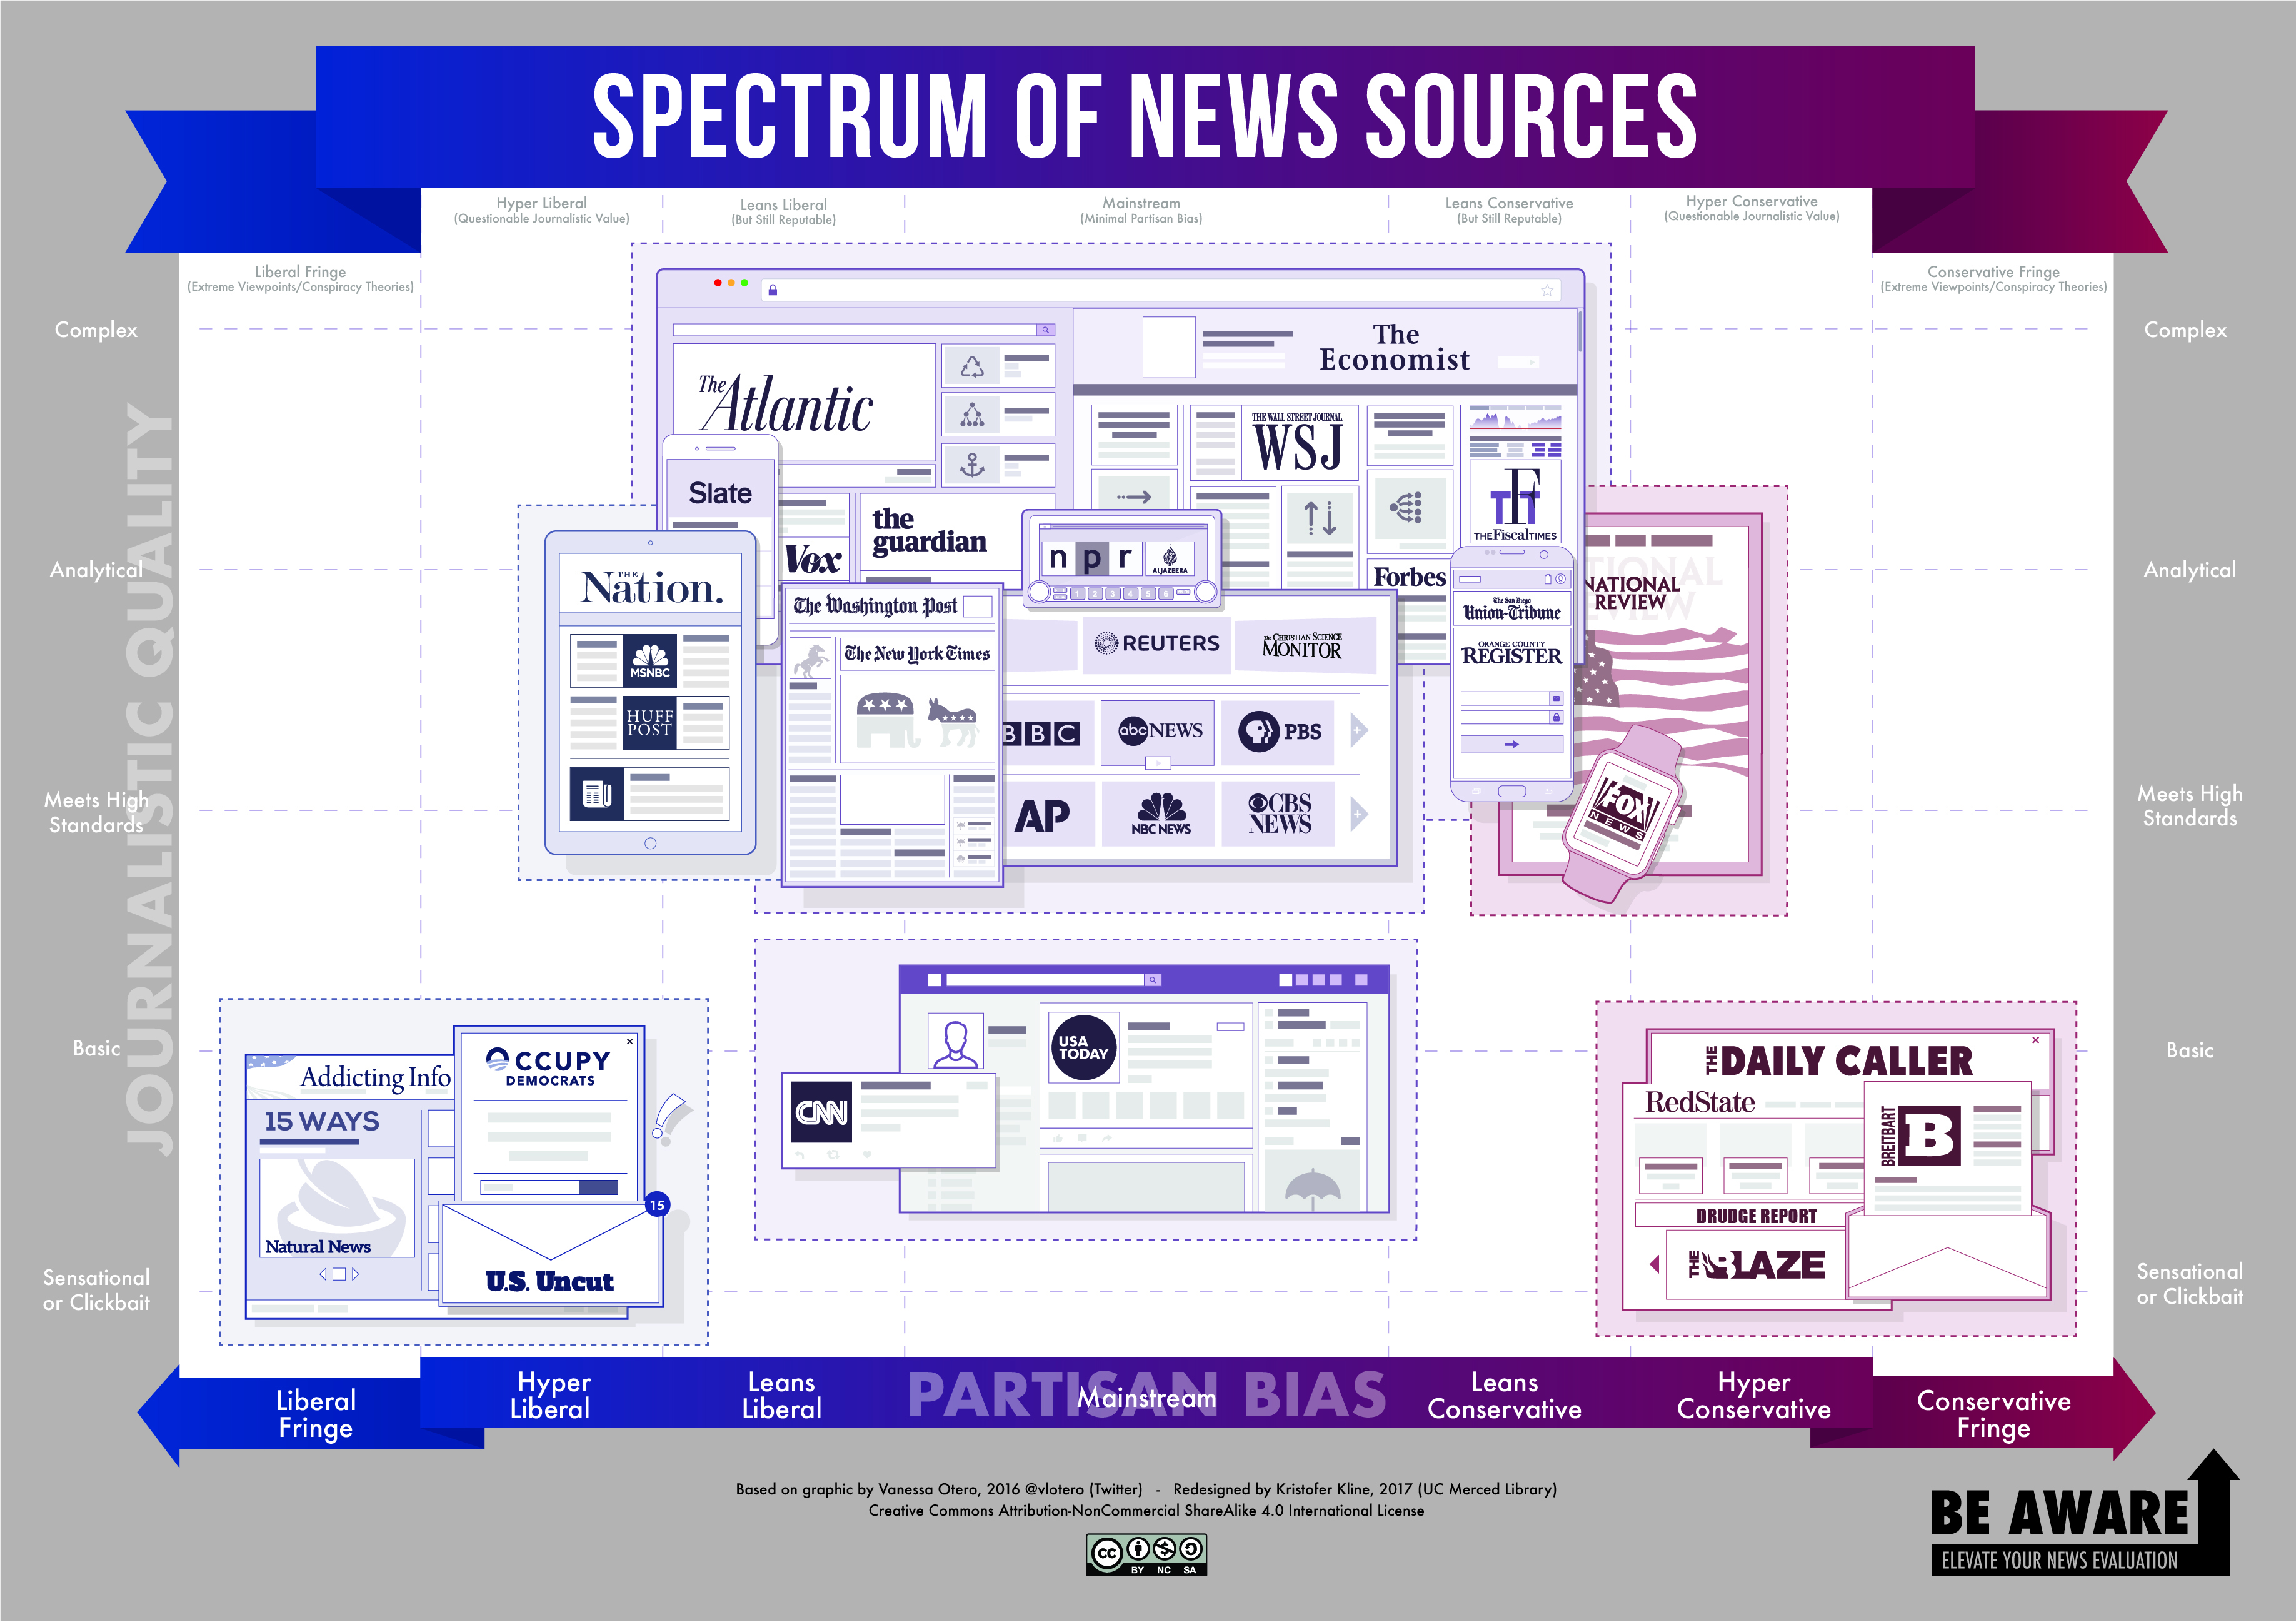 Spectrum of News Sources Partisan Bias Infographic